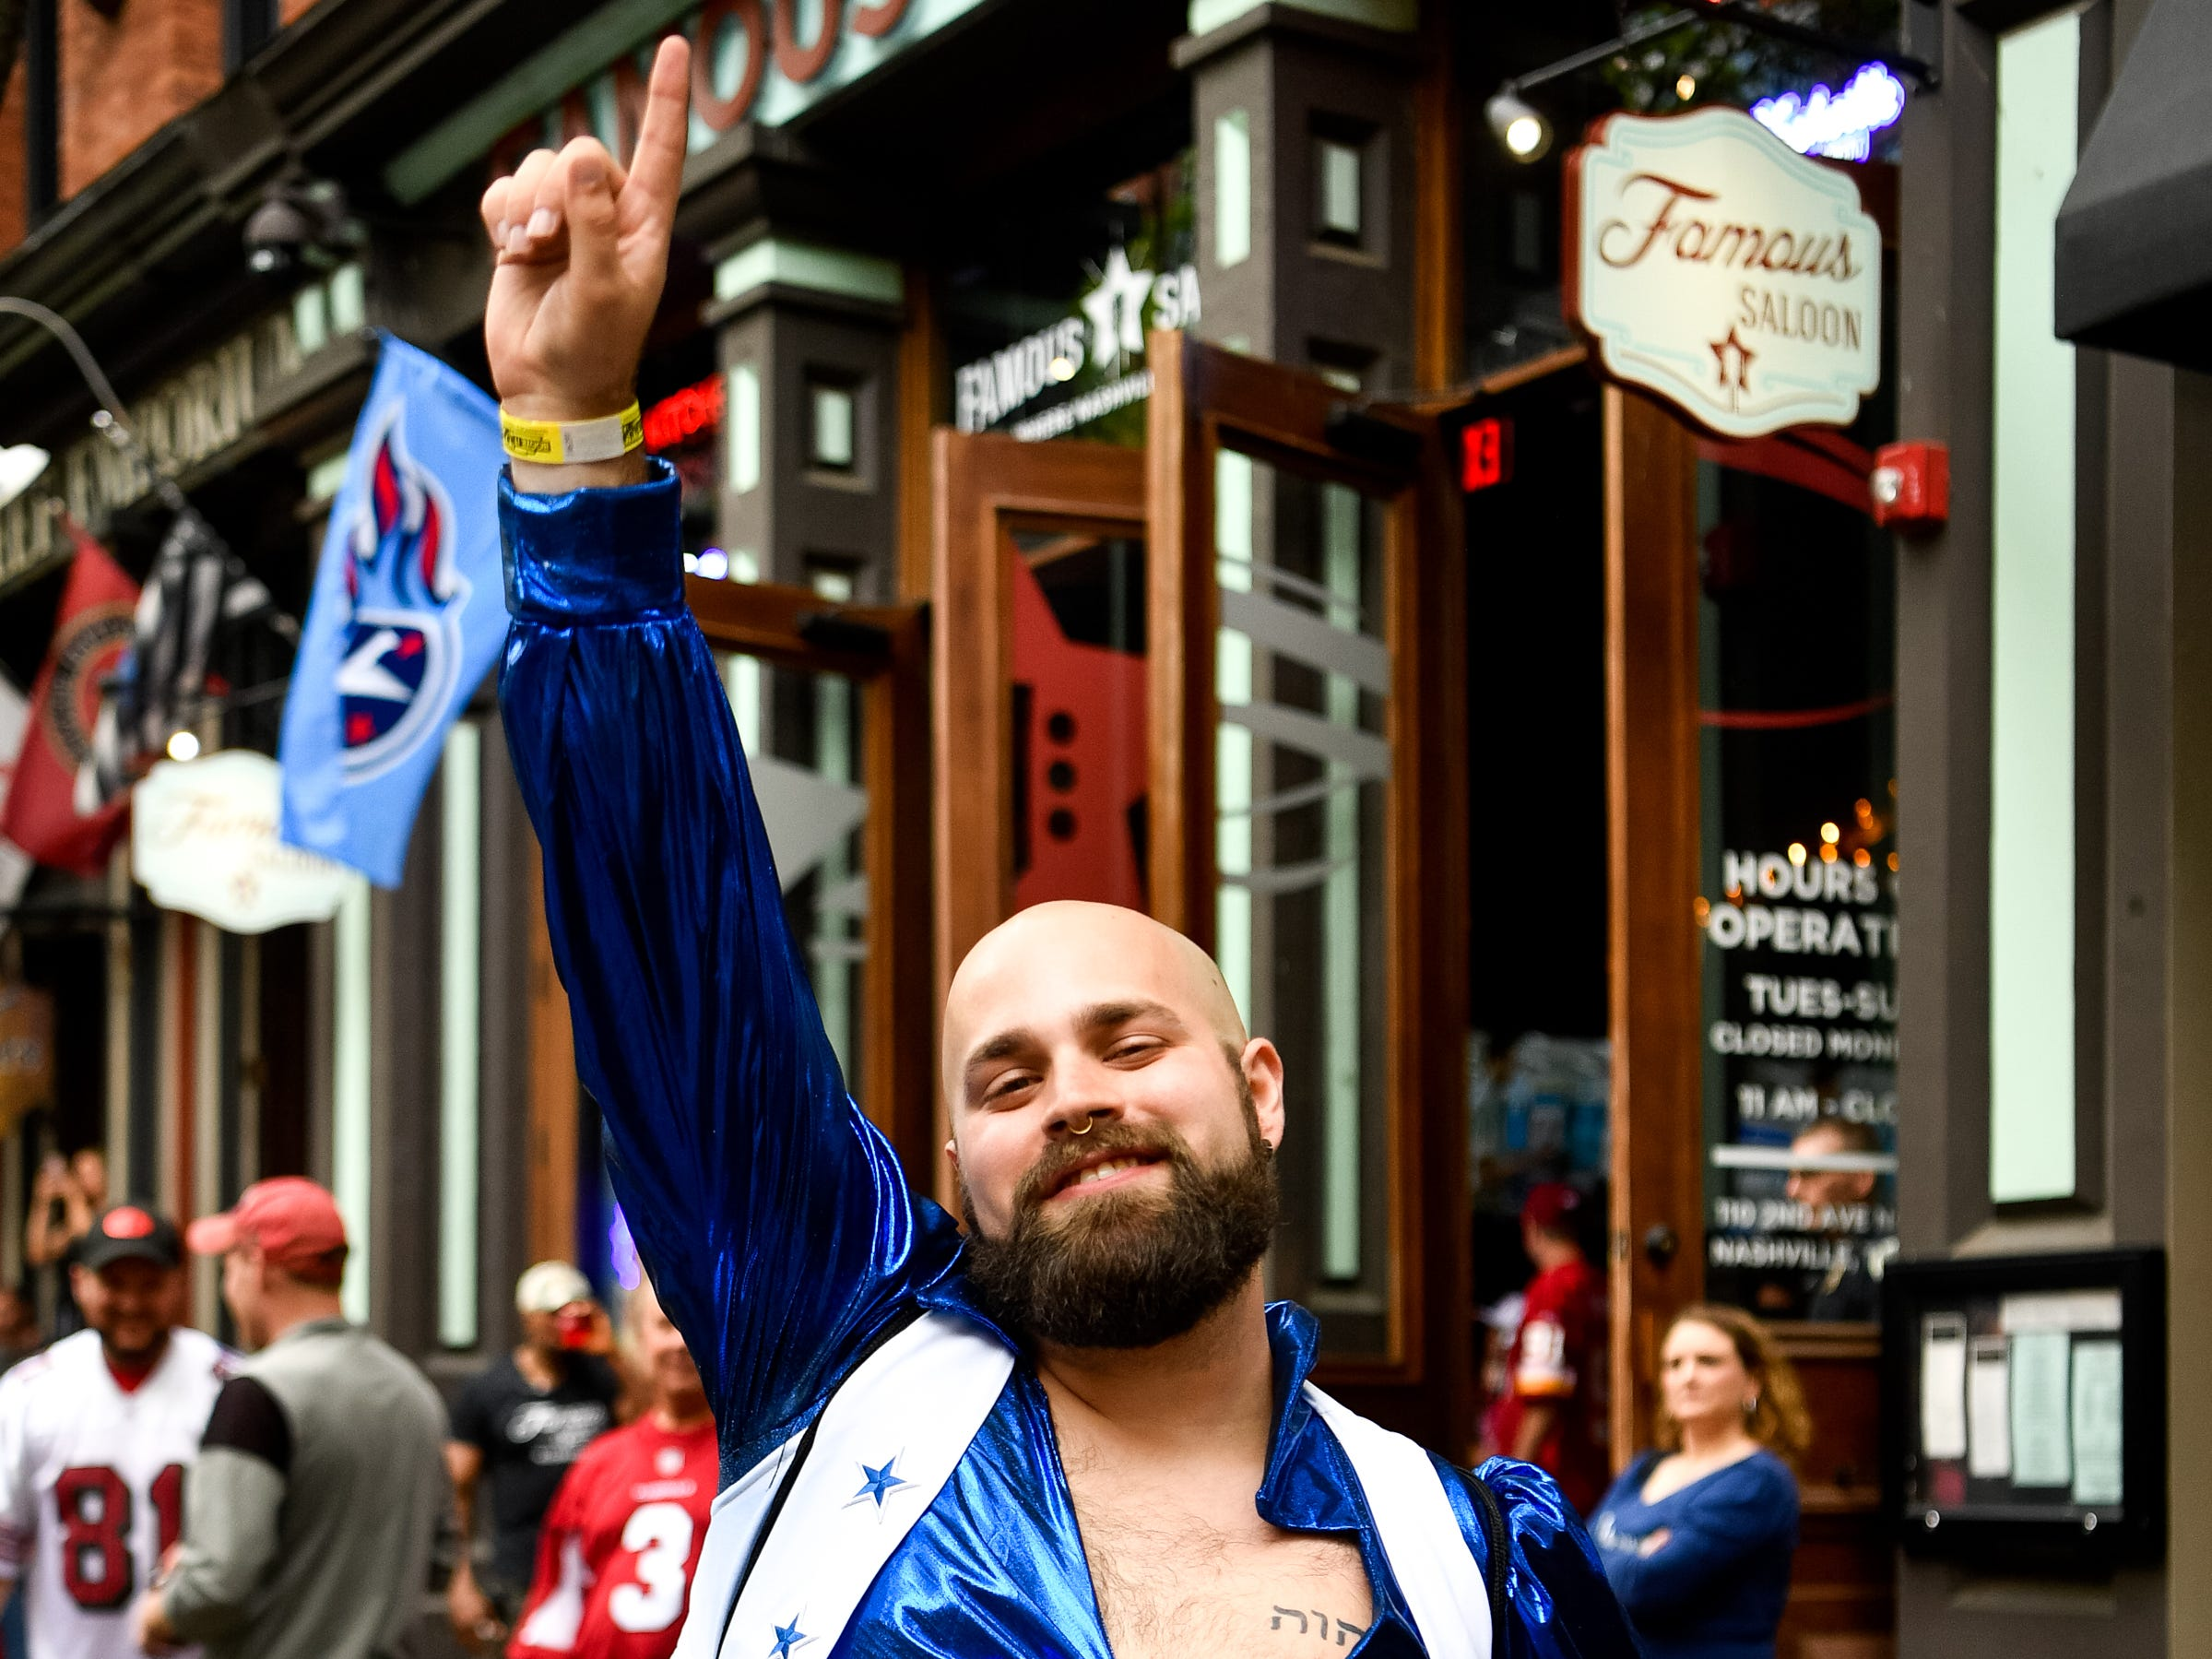 Josh Darretta poses for a photo in the only costume left to purchase, just off Lower Broadway during the NFL Draft Thursday, April 25, 2019, in Nashville, Tenn.